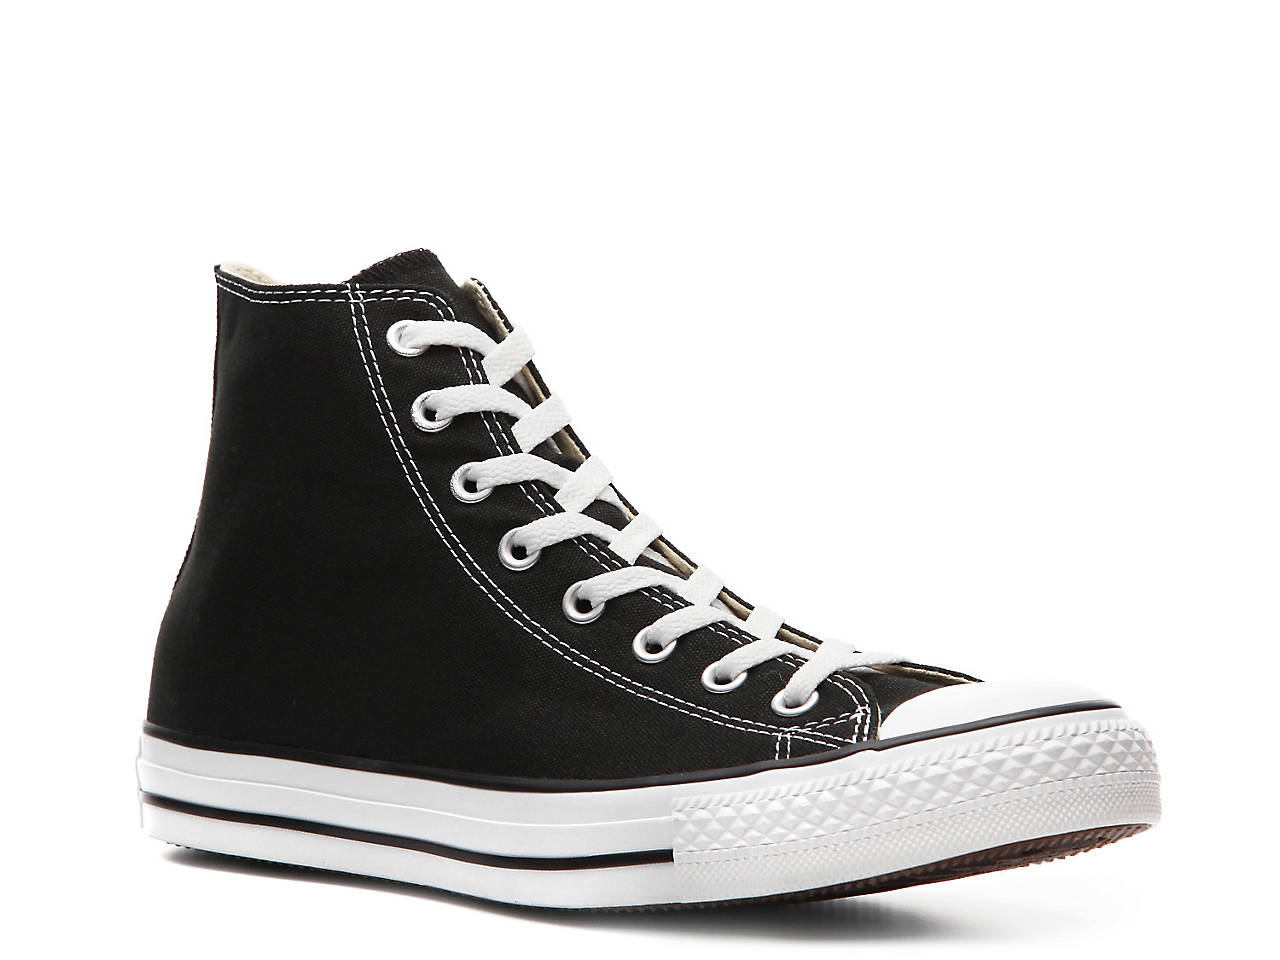 Converse Chuck Taylor All Star High-Top Sneaker - Men s Men s Shoes ... 10f7479fa